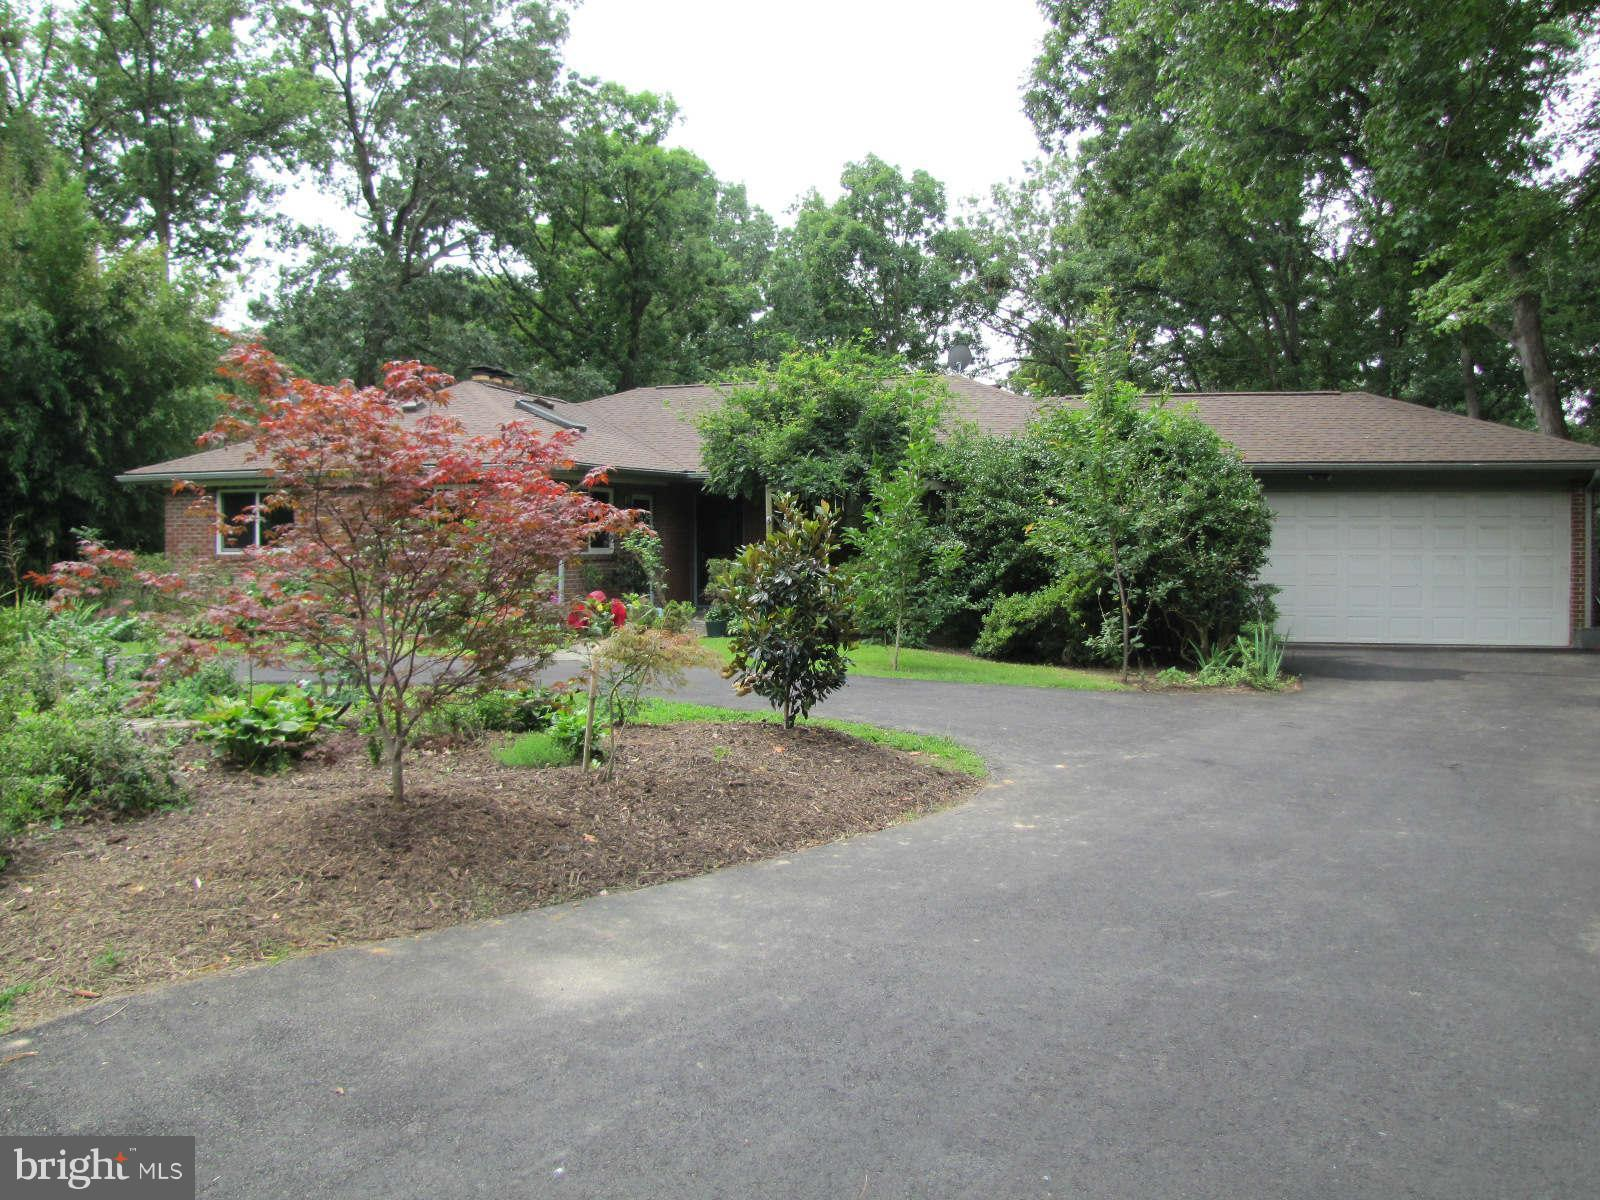 FULLY FURNISHED home available for a minimum of 6 months but owner is flexible if you need 1 or 2 more months beyond that.  Home is available starting February 15, 2019.   Lovely 4BR/3BA Rambler w/expansive, renovated kitchen & den, 2-Car Garage & nice deck located in LAKE BARCROFT. Enjoy the lake & 5 white sanded beaches & be only 7 miles to DC, 3 miles to EFC Metro, 5 miles to Pentagon, and within 2 miles to Trader Joes, Harris Teeter, Shoppers.  Utilities and Yard Care not included in Rent. Pets are allowed on a case by case basis.